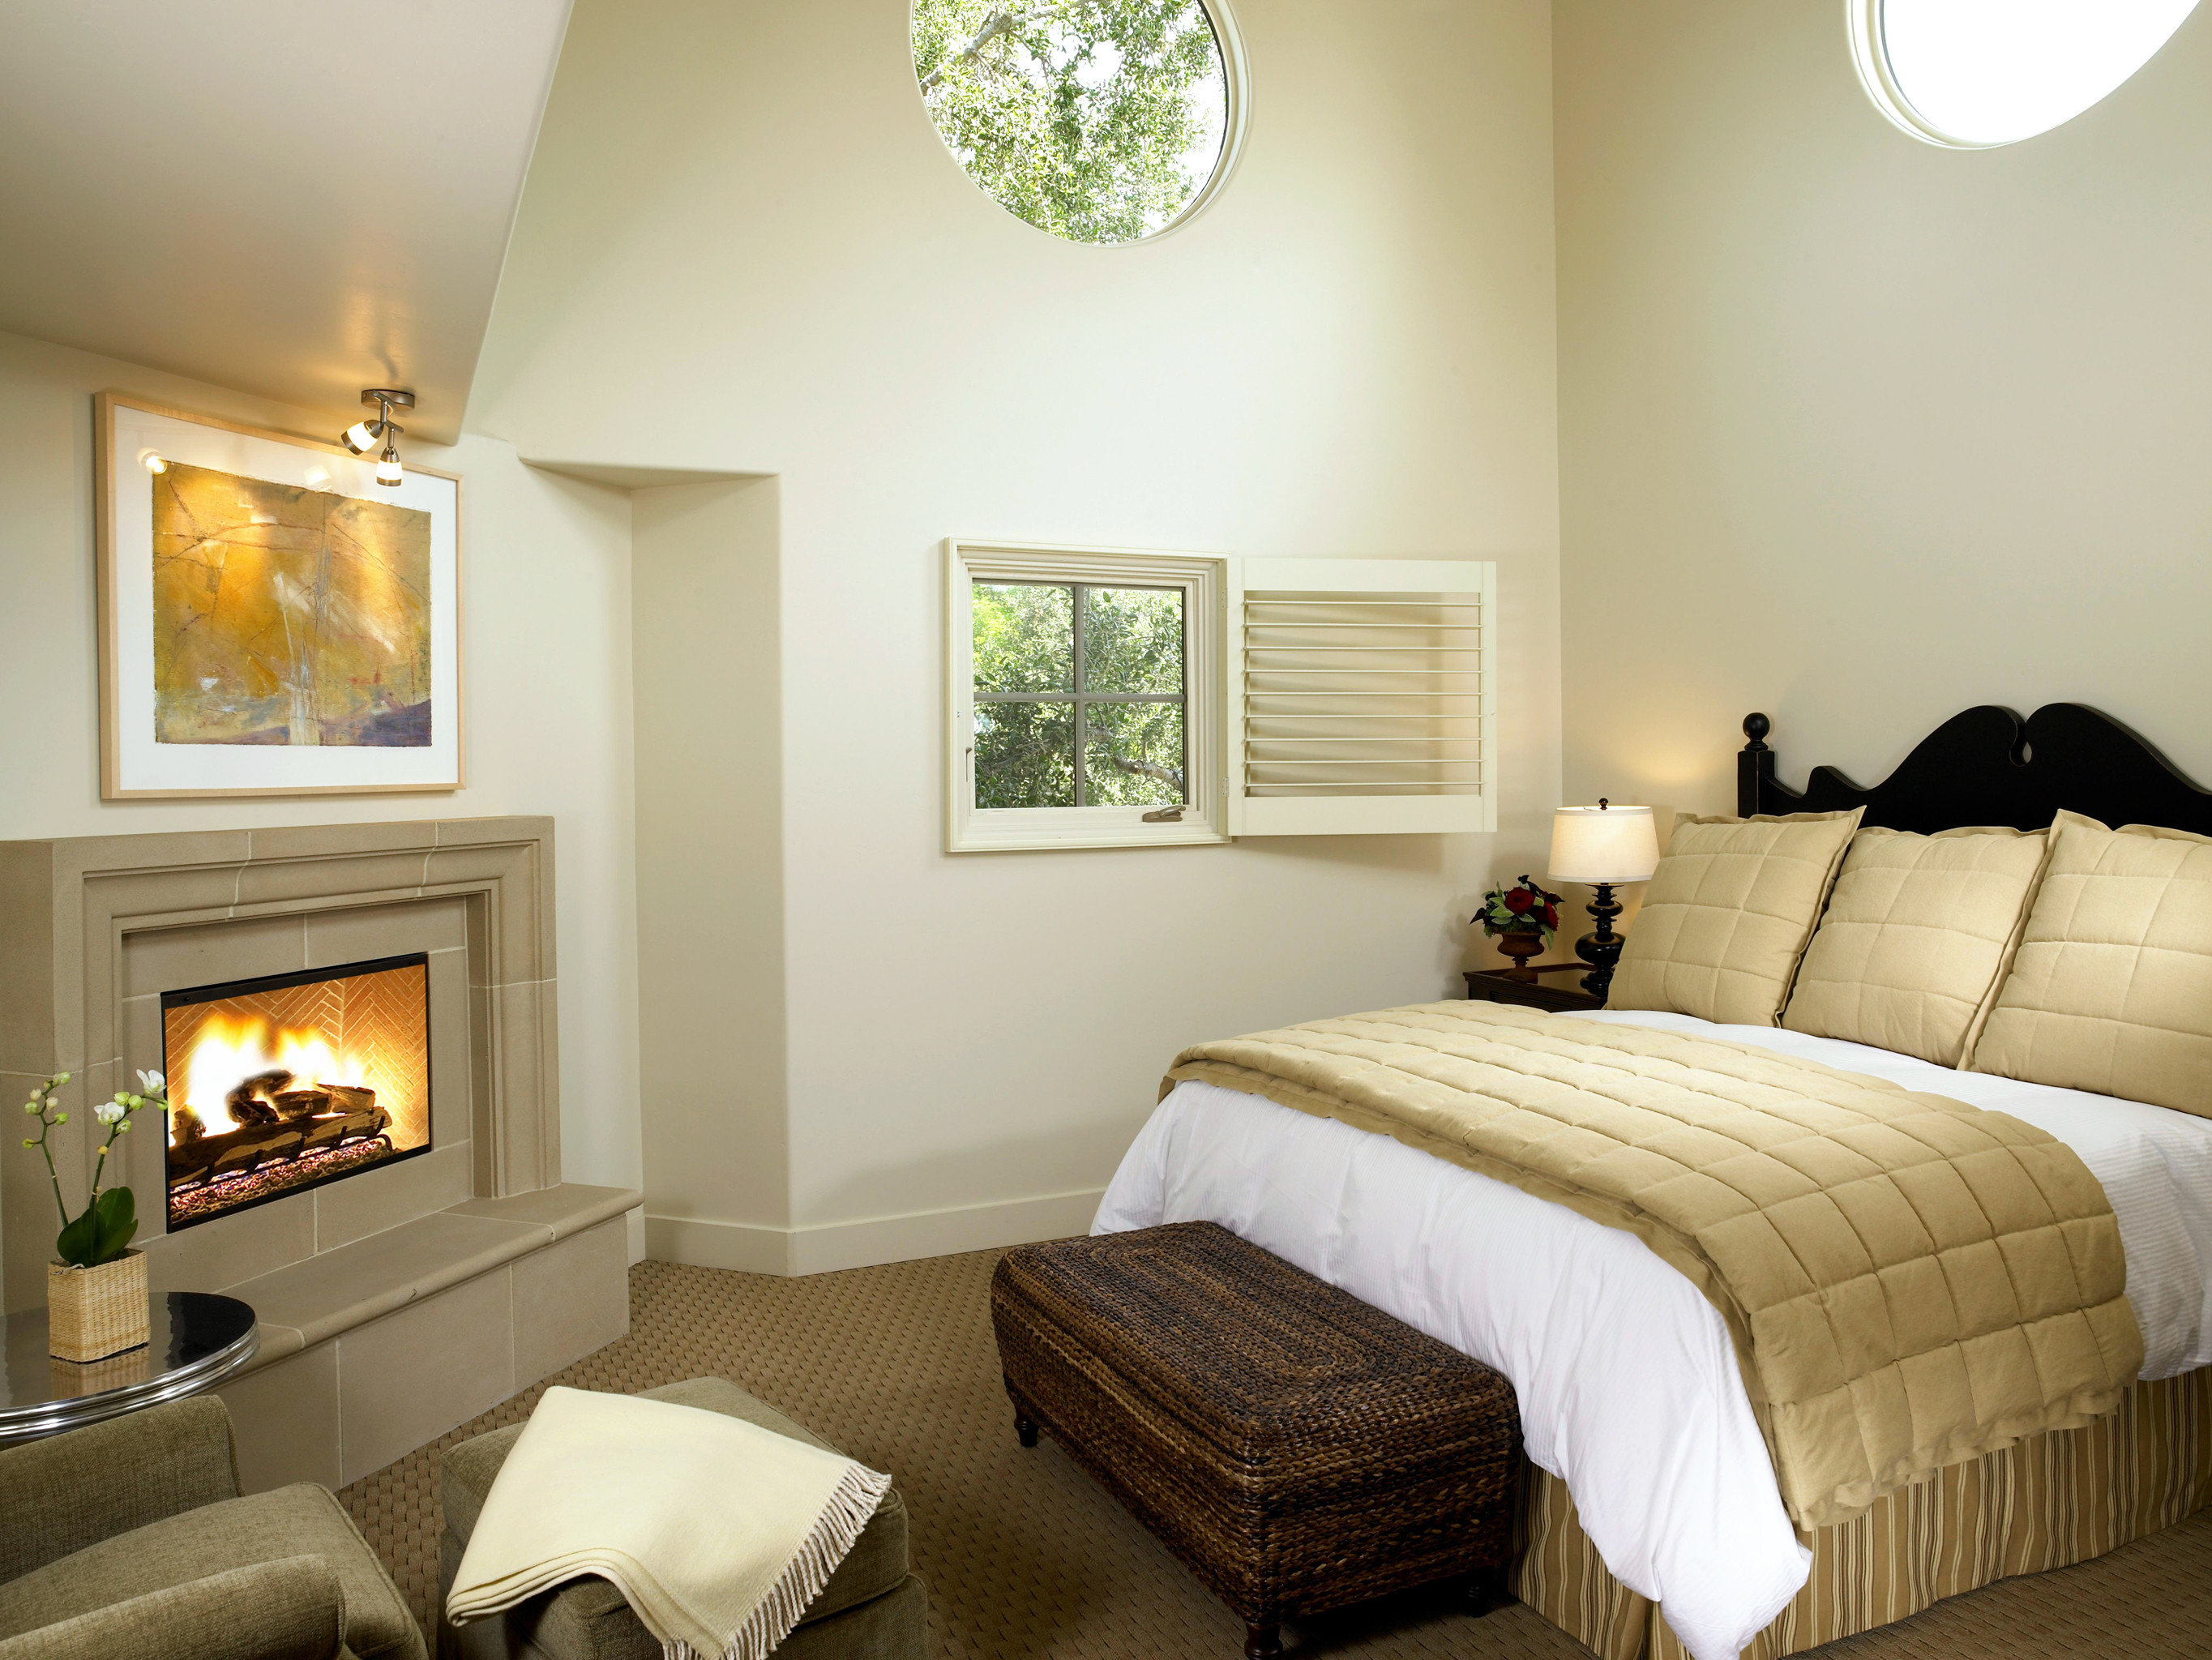 B&B Bedroom Boutique Fireplace Inn property home cottage living room Suite farmhouse